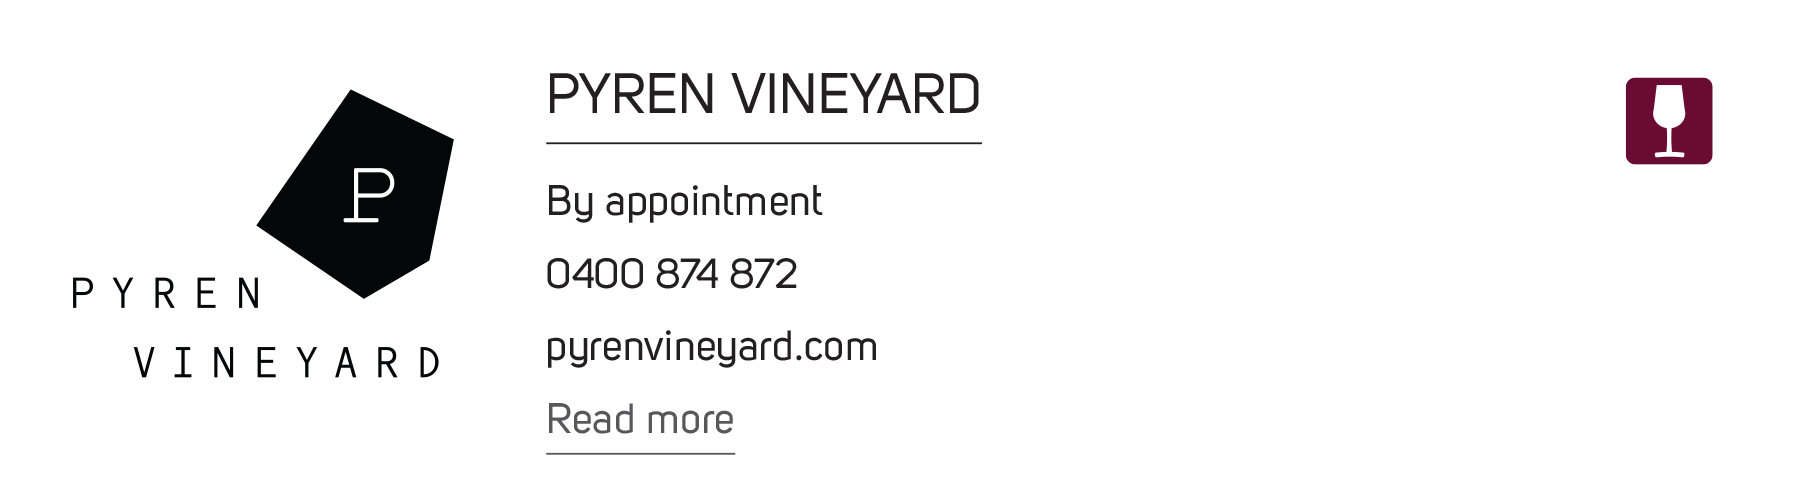 Pyren Vineyard Button